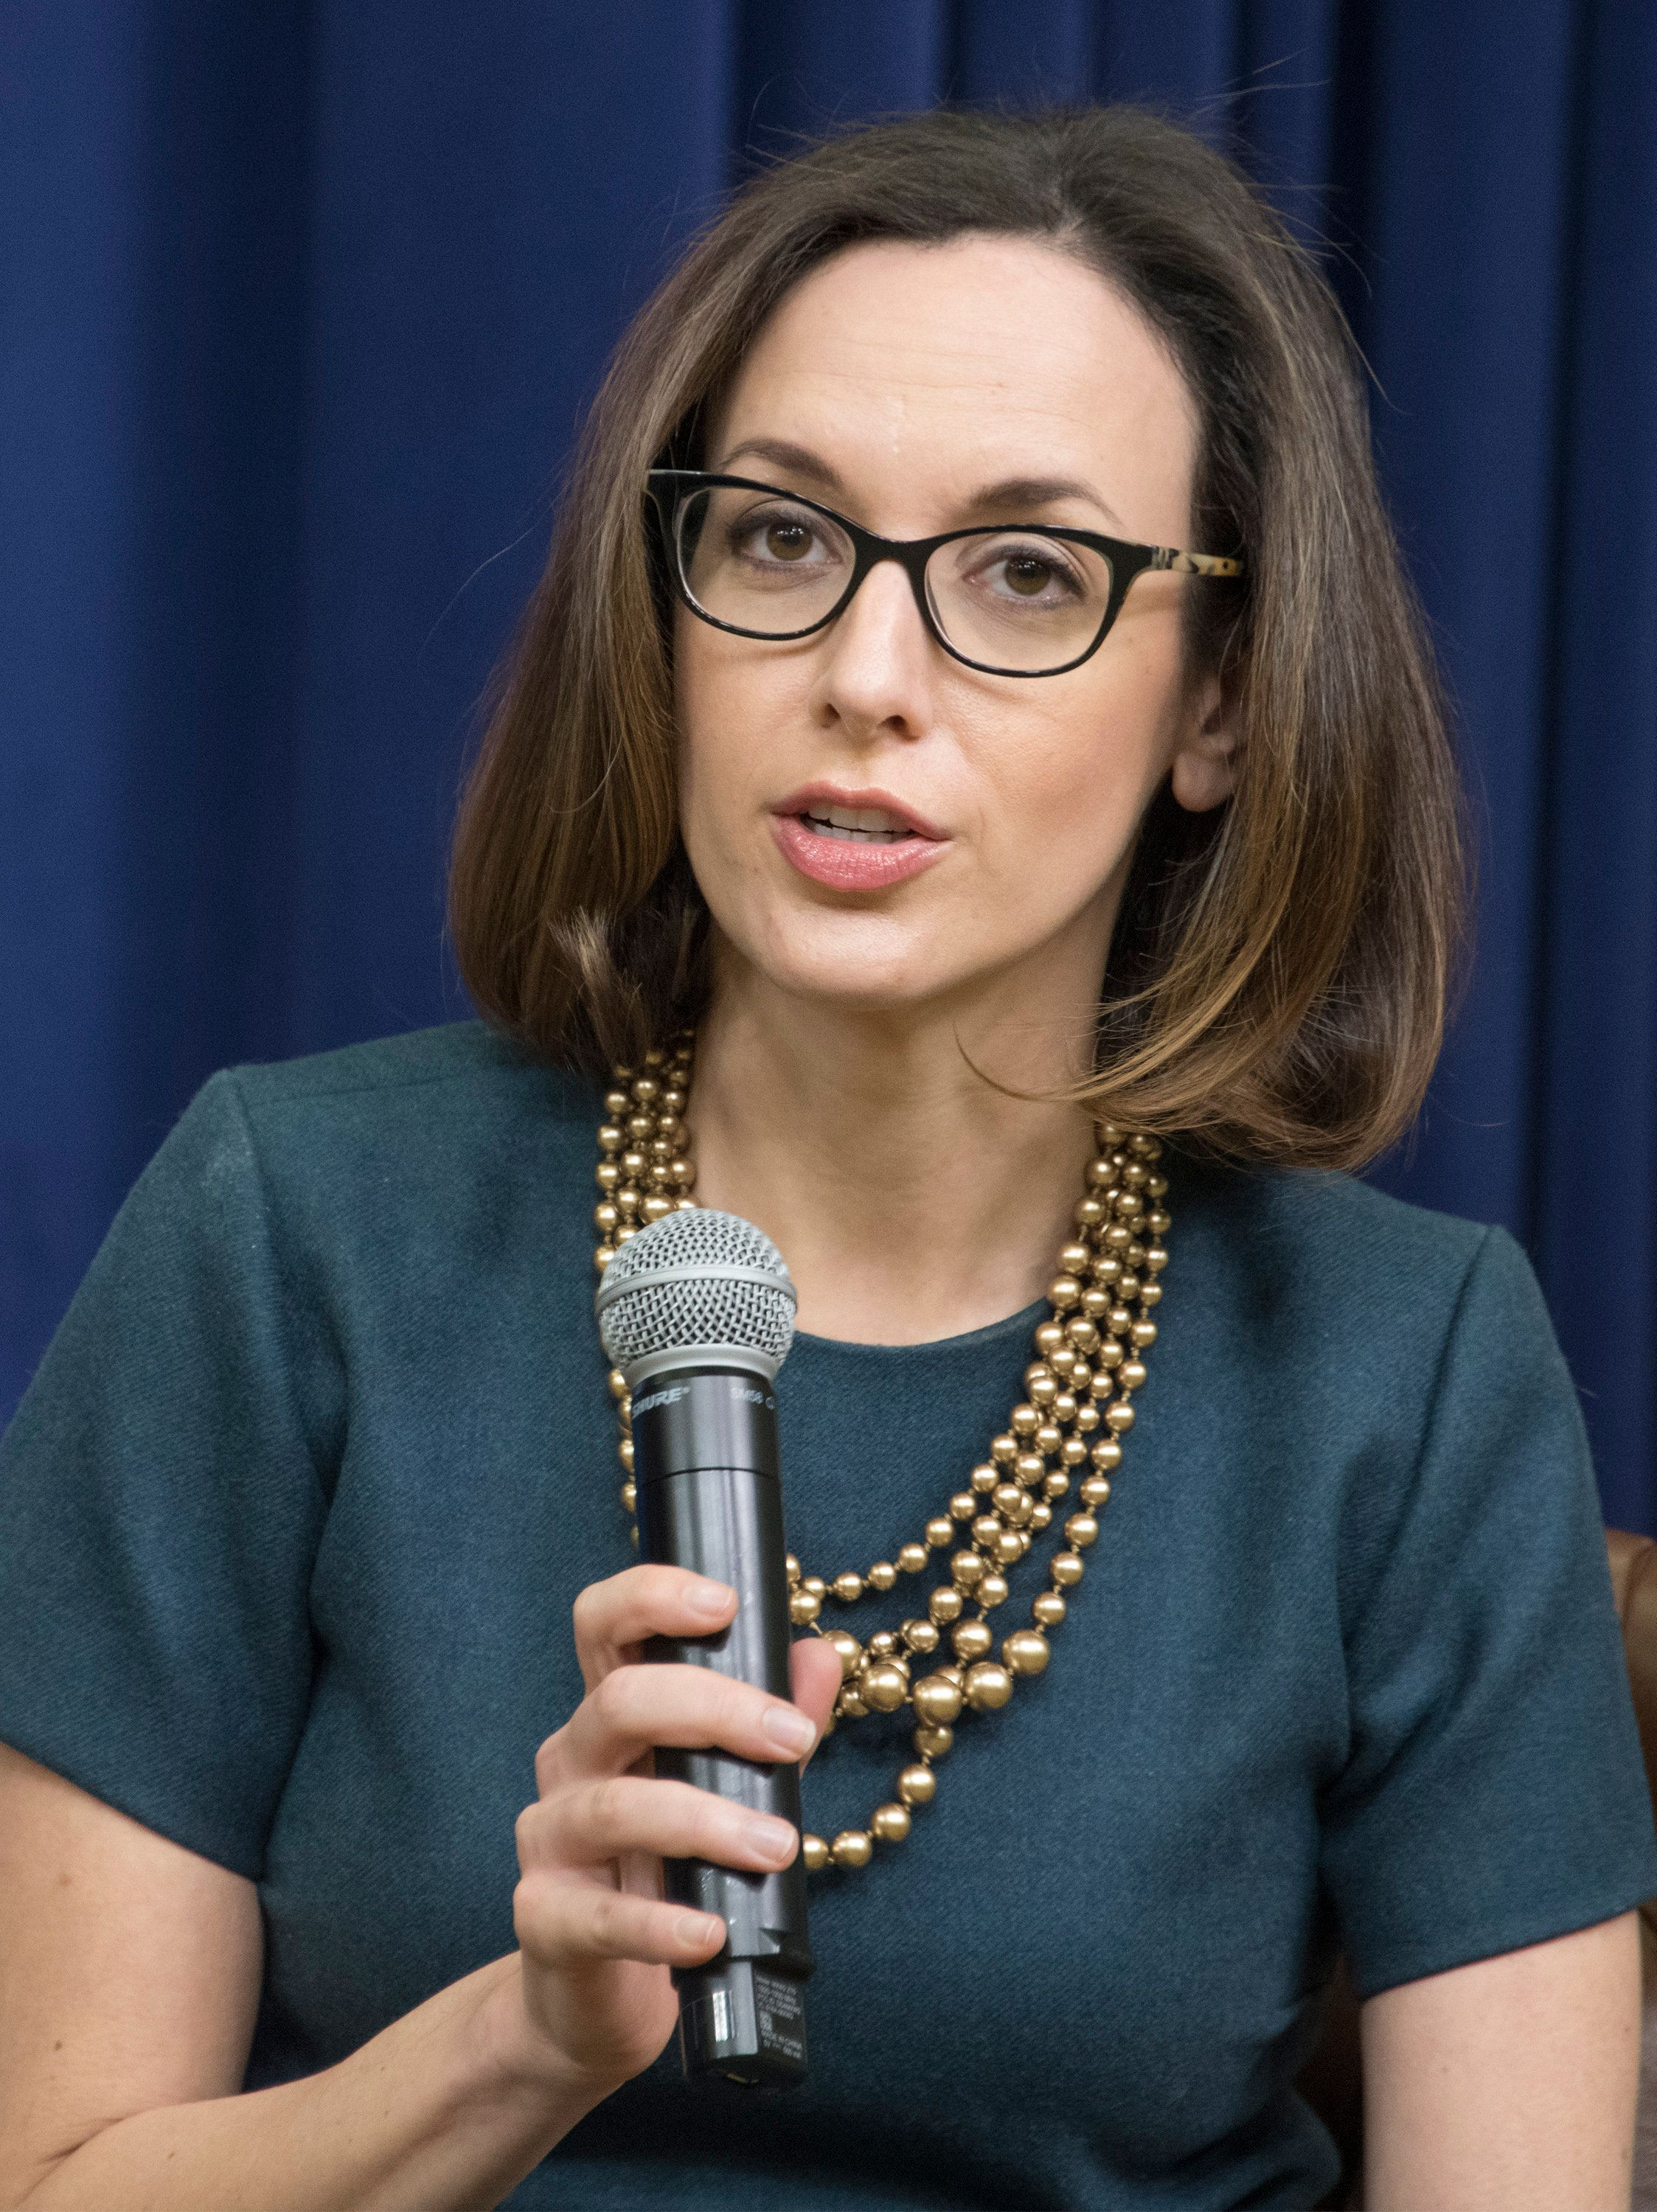 "Sarah Isgur Flores, Director of Public Affairs for the United States Department of Justice, participates in a panel discussion ""on the Opioid Crisis and Free Speech on College Campuses"" at the Generation Next Summit at the White House in Washington, DC on Thursday, March 22, 2018. (Photo by Ron Sachs /CNP/Sipa USA)"